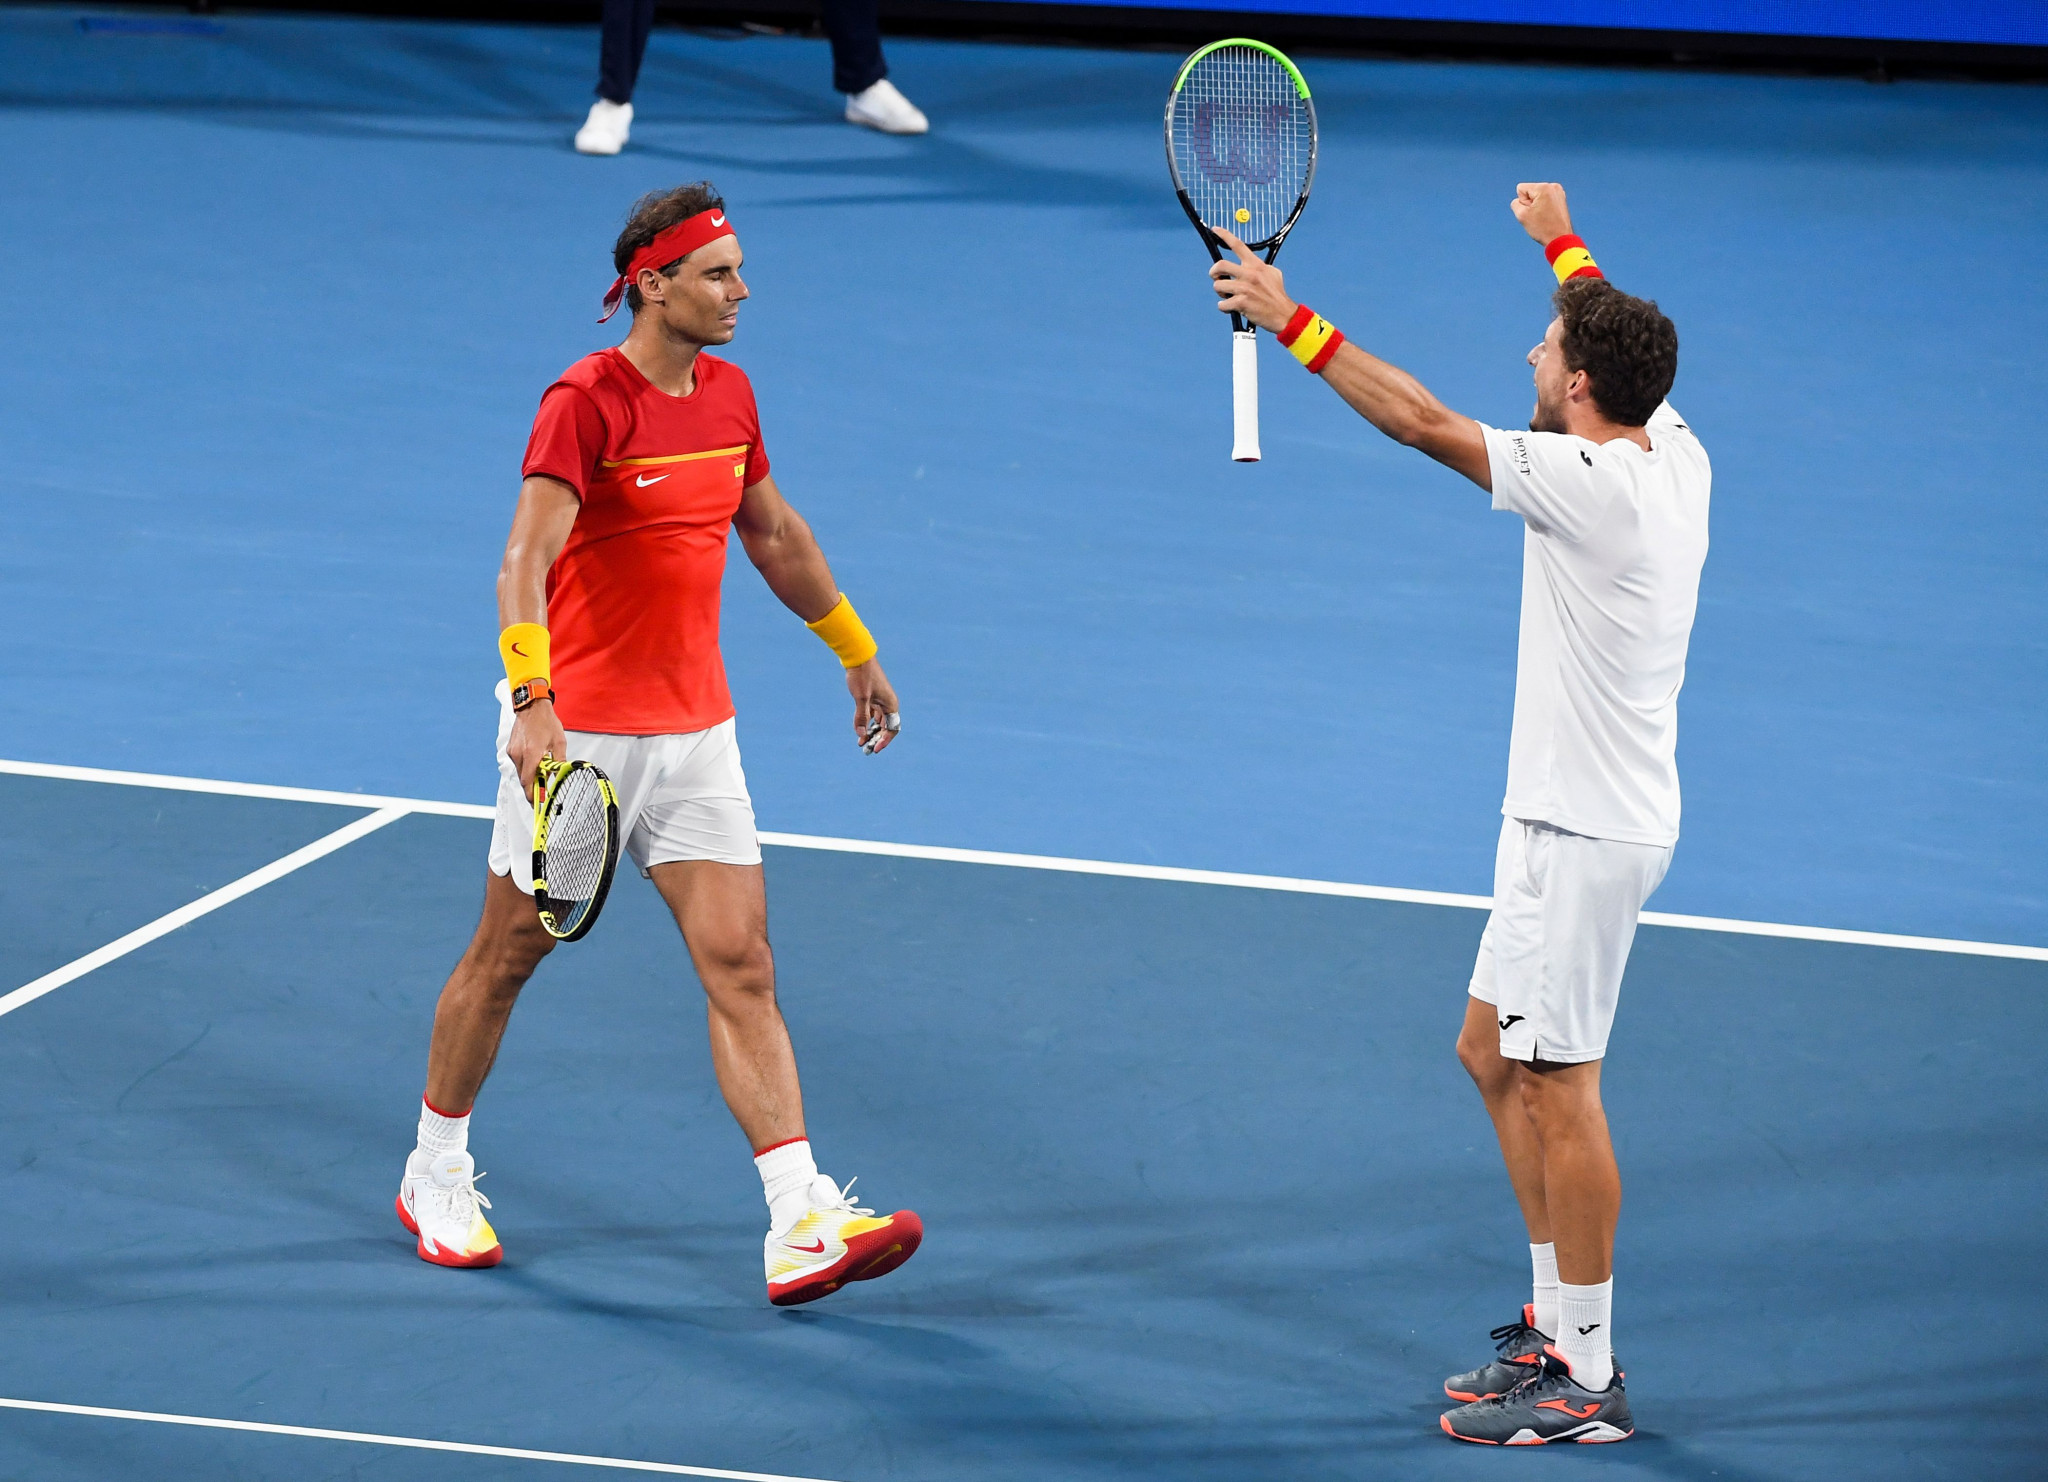 Nadal is loser then winner as Spain triumph in epic ATP Cup match against Belgium